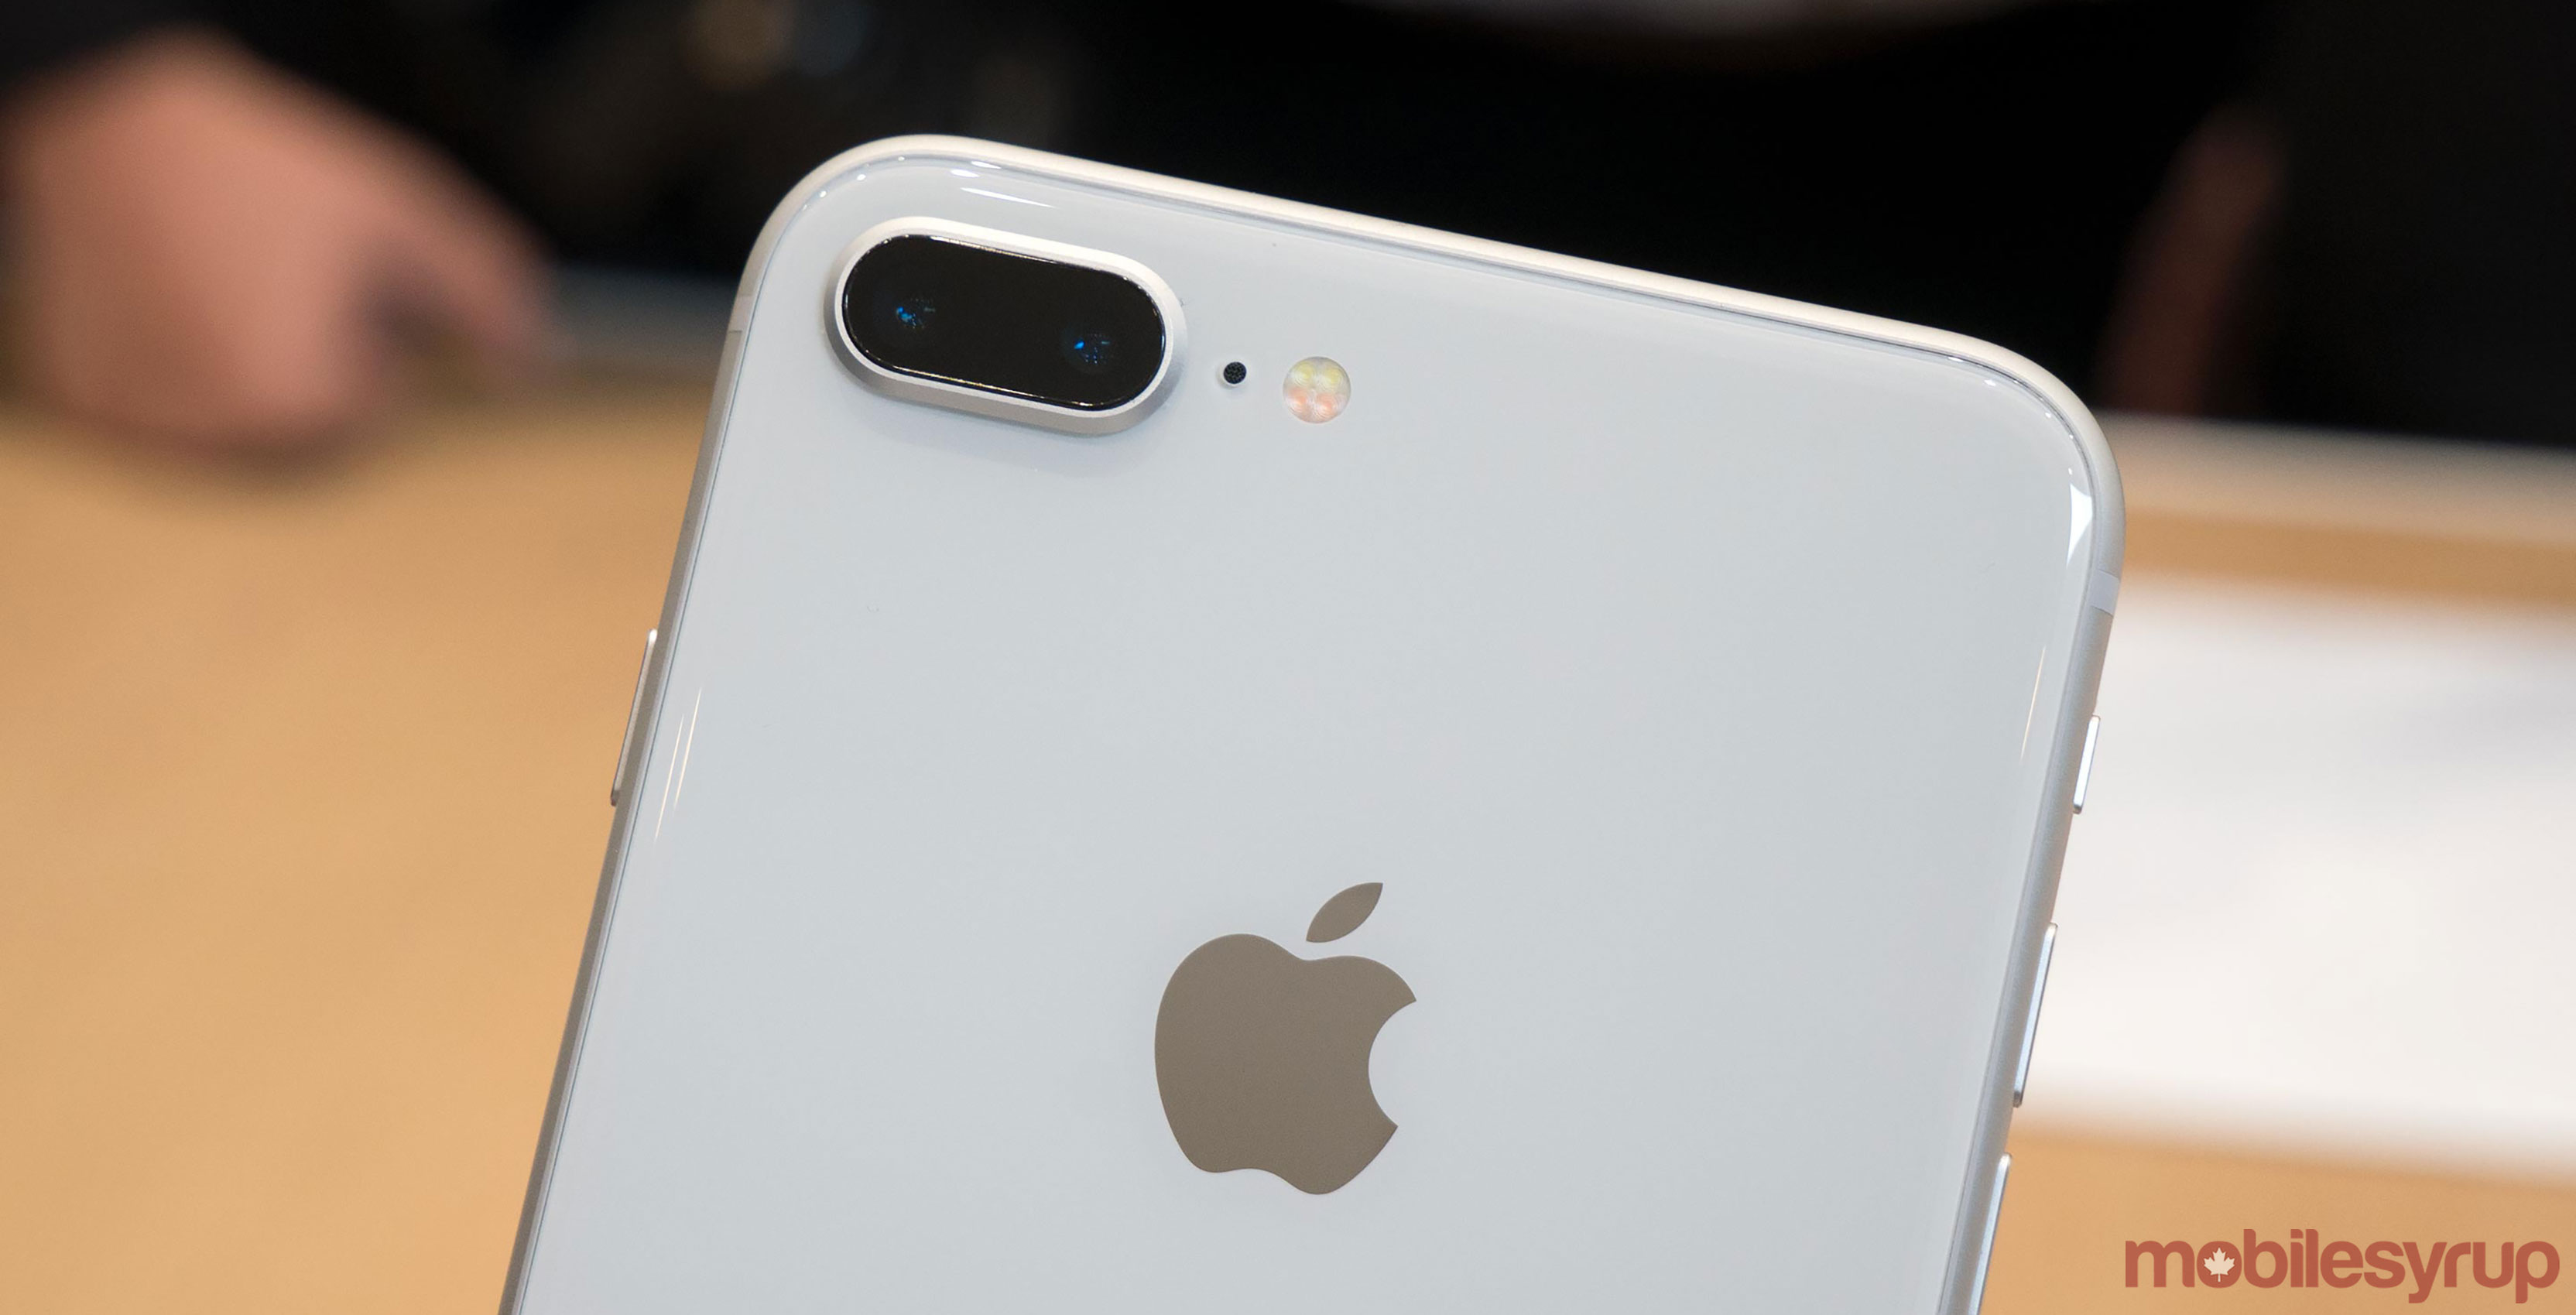 iphone 8 plus has the best camera dxomark has ever tested